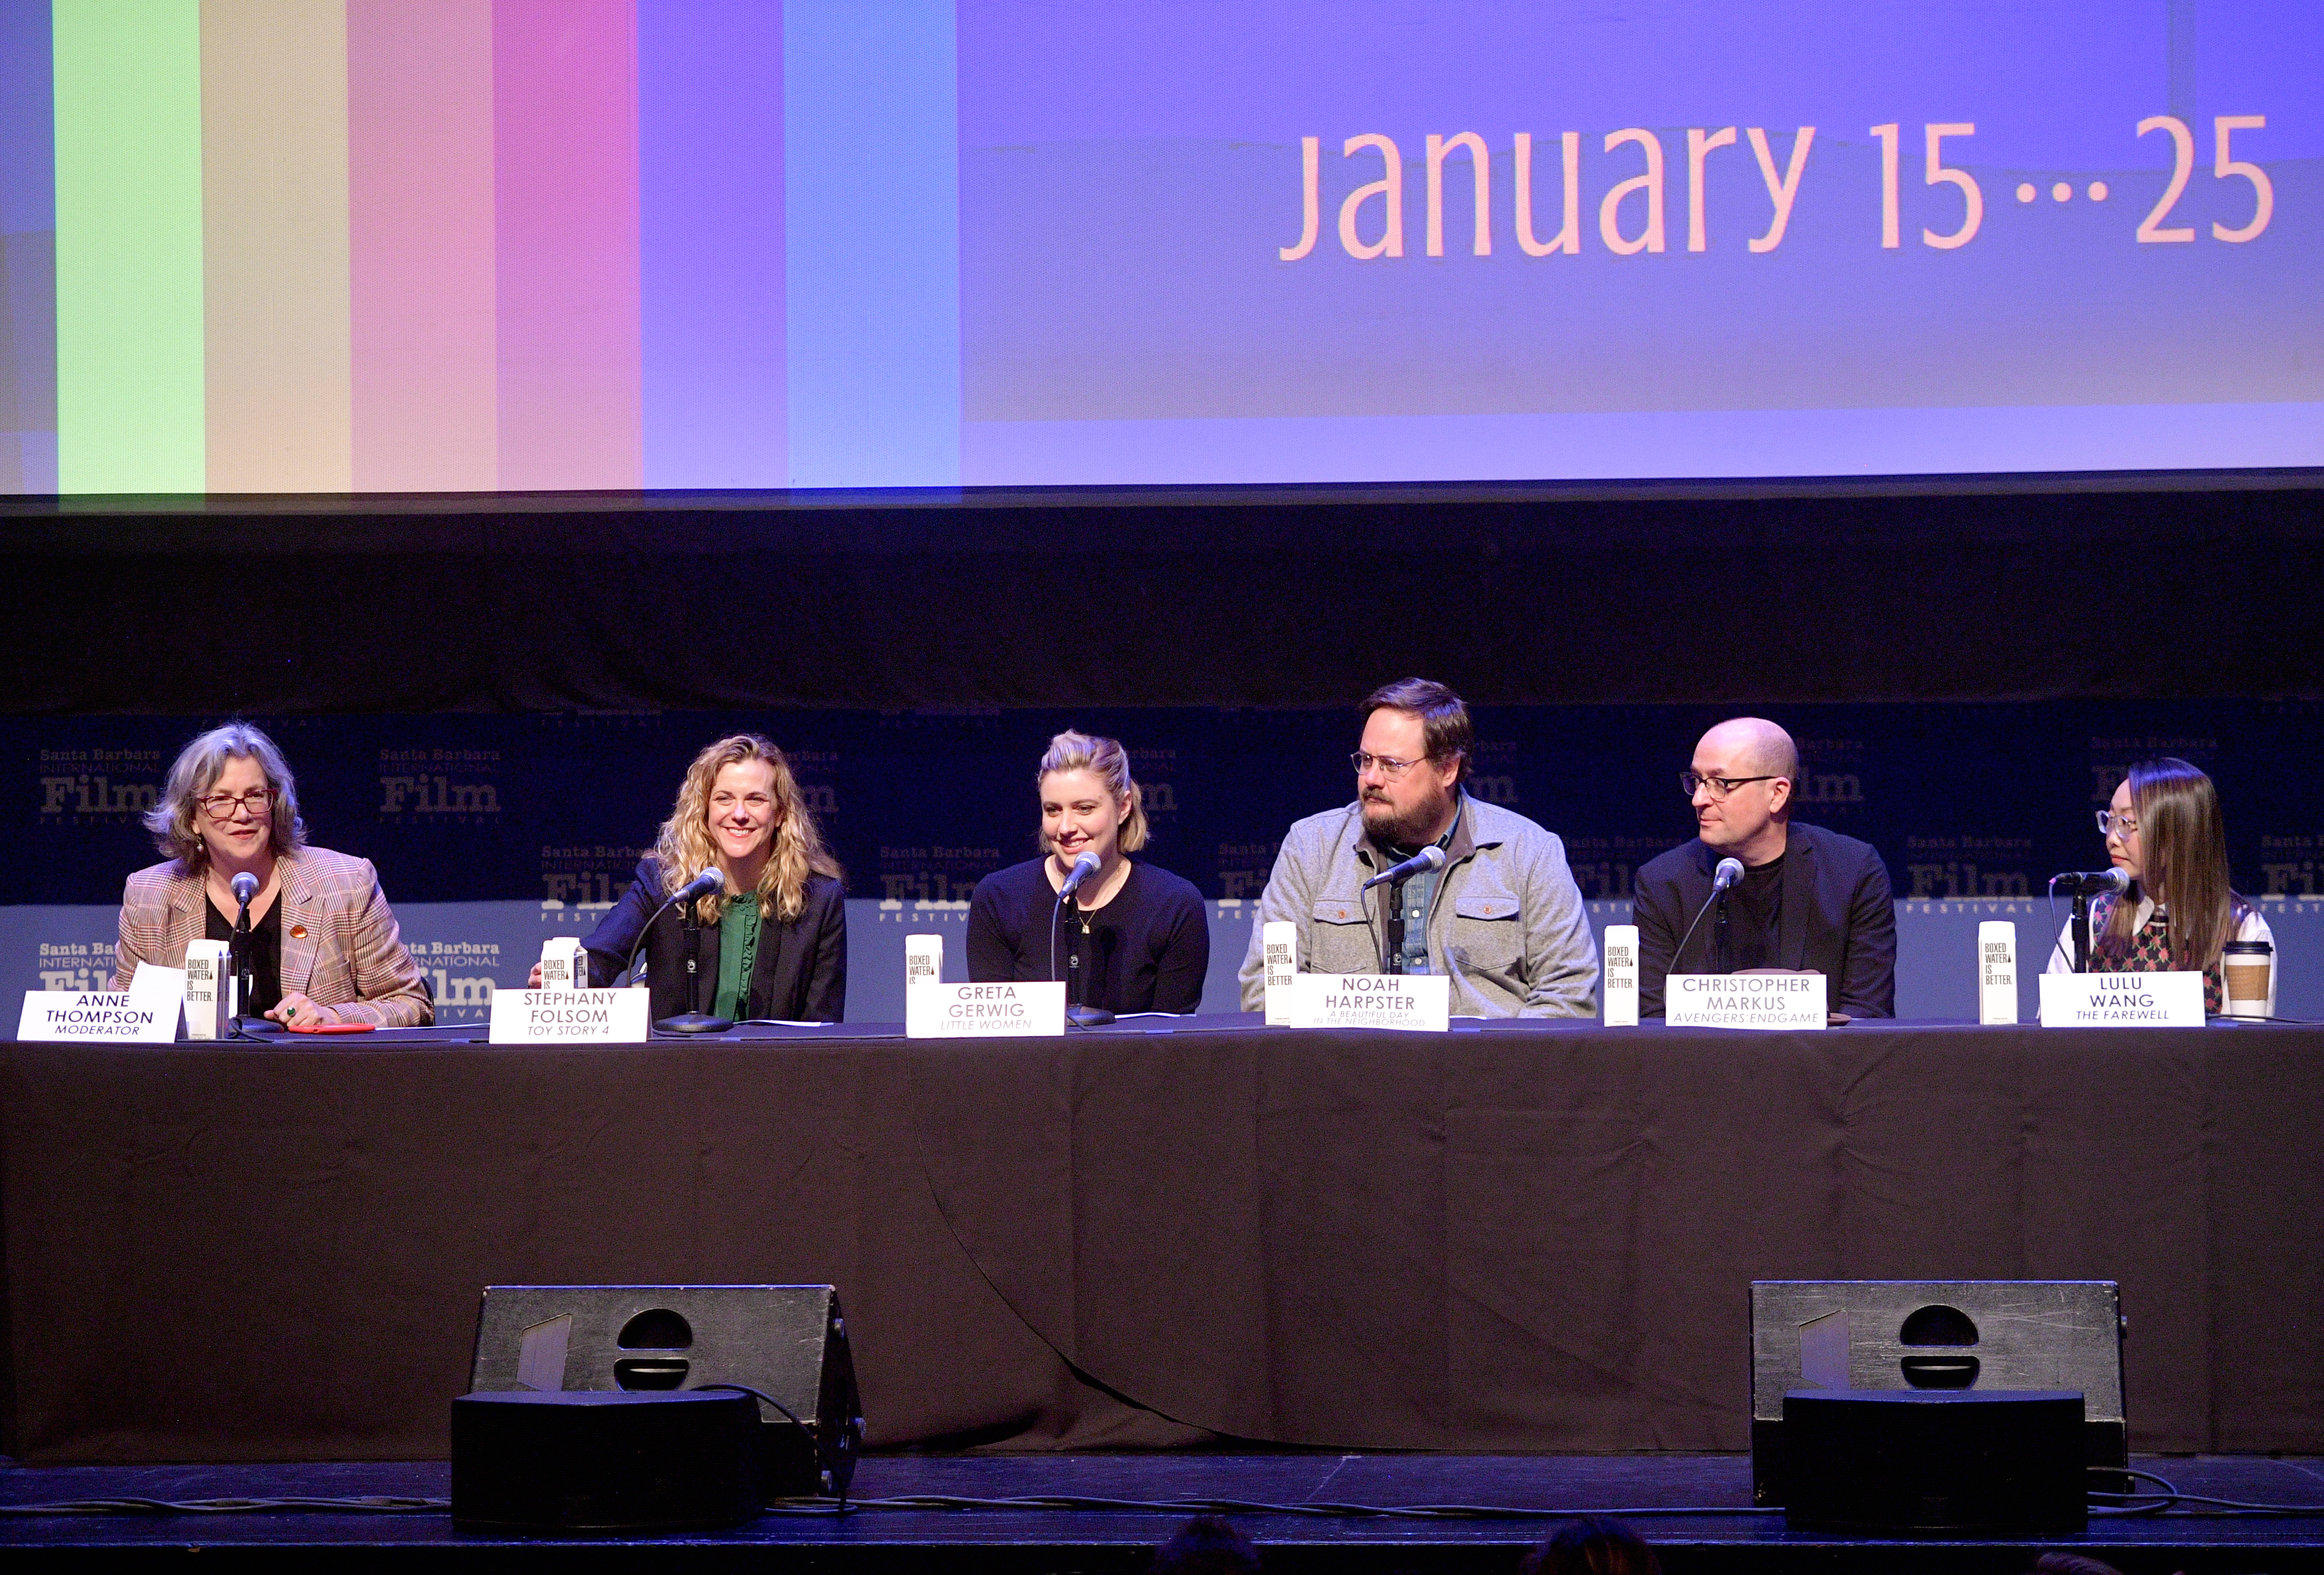 SANTA BARBARA, CALIFORNIA - JANUARY 19: Anne Thompson, Stephany Folsom, Greta Gerwig, Noah Harpster, Christopher Markus and Lulu Wang speak onstage at the Writers Panel during the 35th Santa Barbara International Film Festival at the Lobero Theatre on January 19, 2020 in Santa Barbara, California. (Photo by Matt Winkelmeyer/Getty Images for SBIFF)